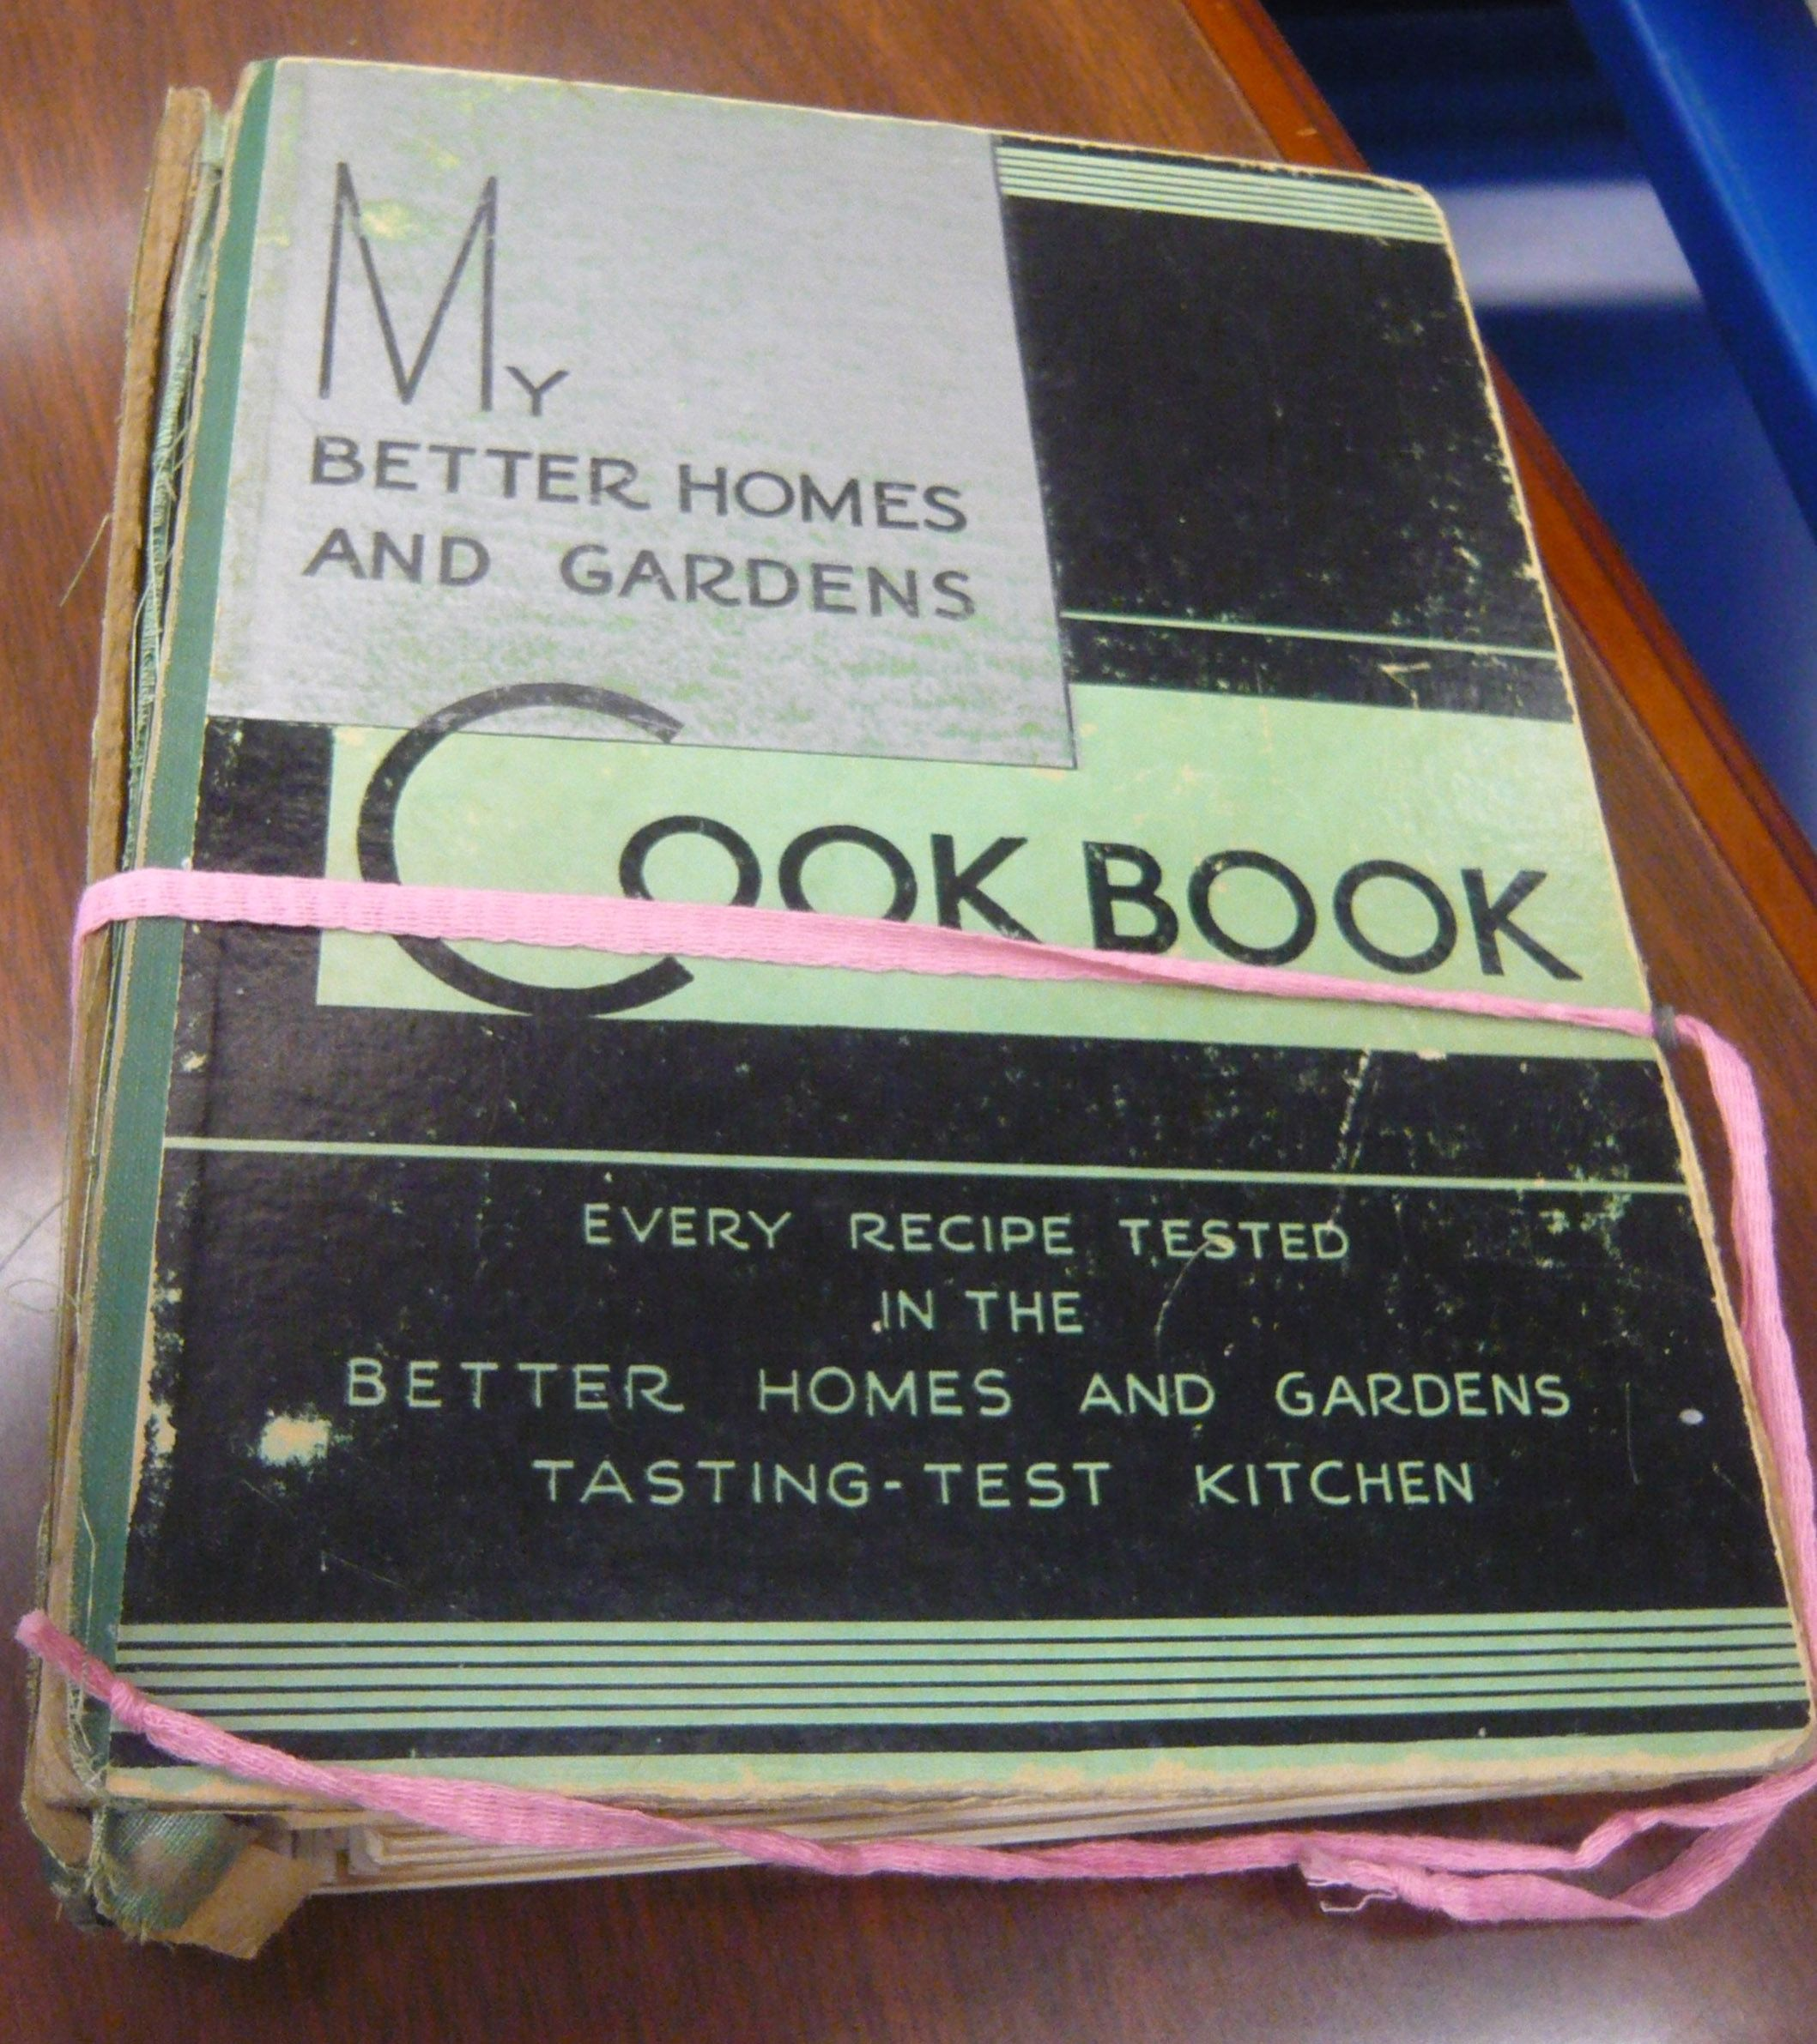 Husted Collection Curios: My Better Homes & Gardens Cook Book, by ...